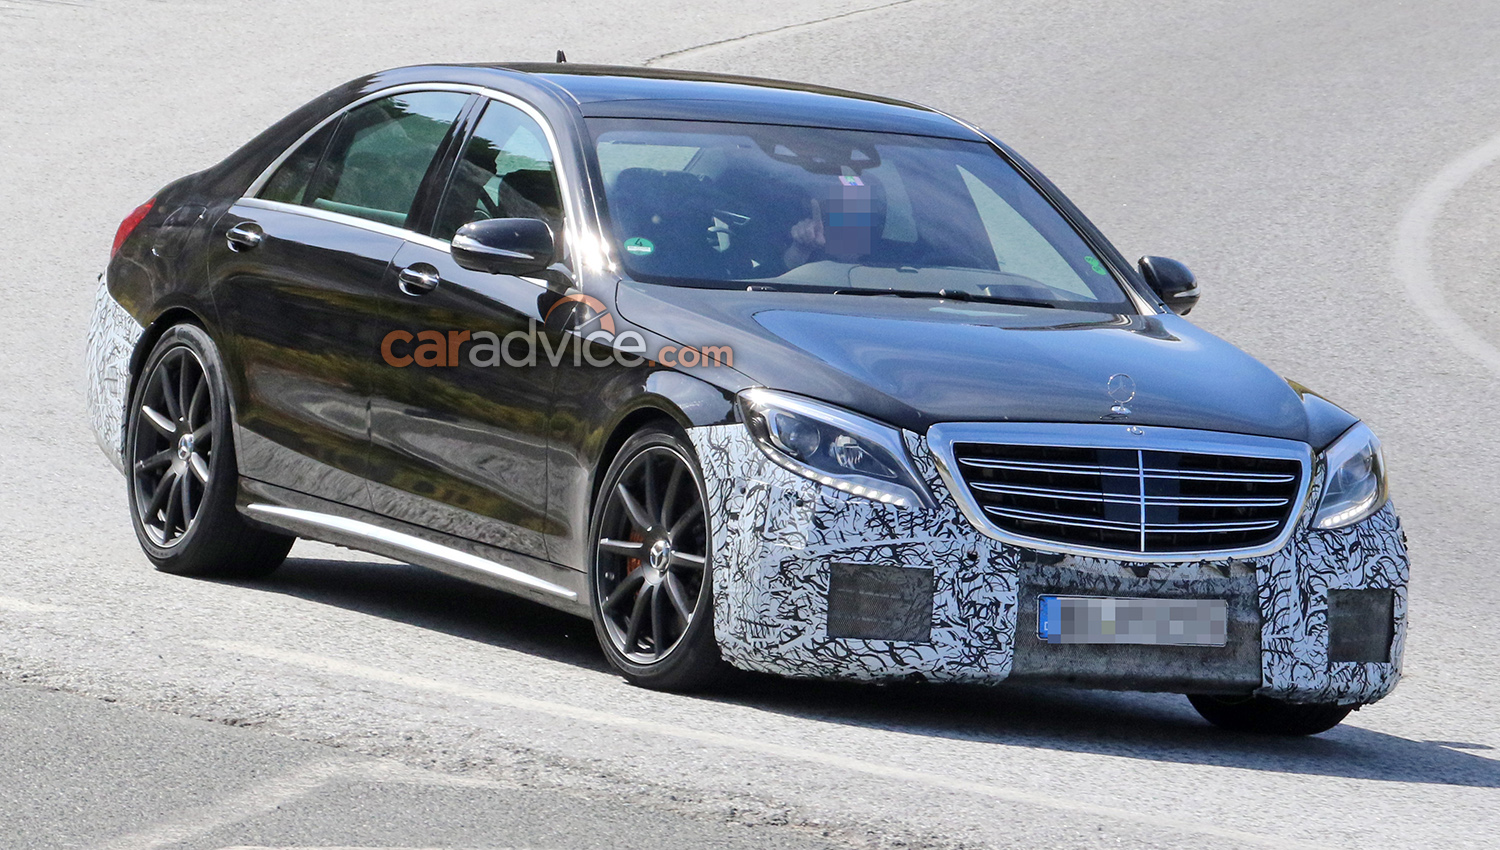 2017 mercedes benz s class amg s63 spied testing update. Black Bedroom Furniture Sets. Home Design Ideas